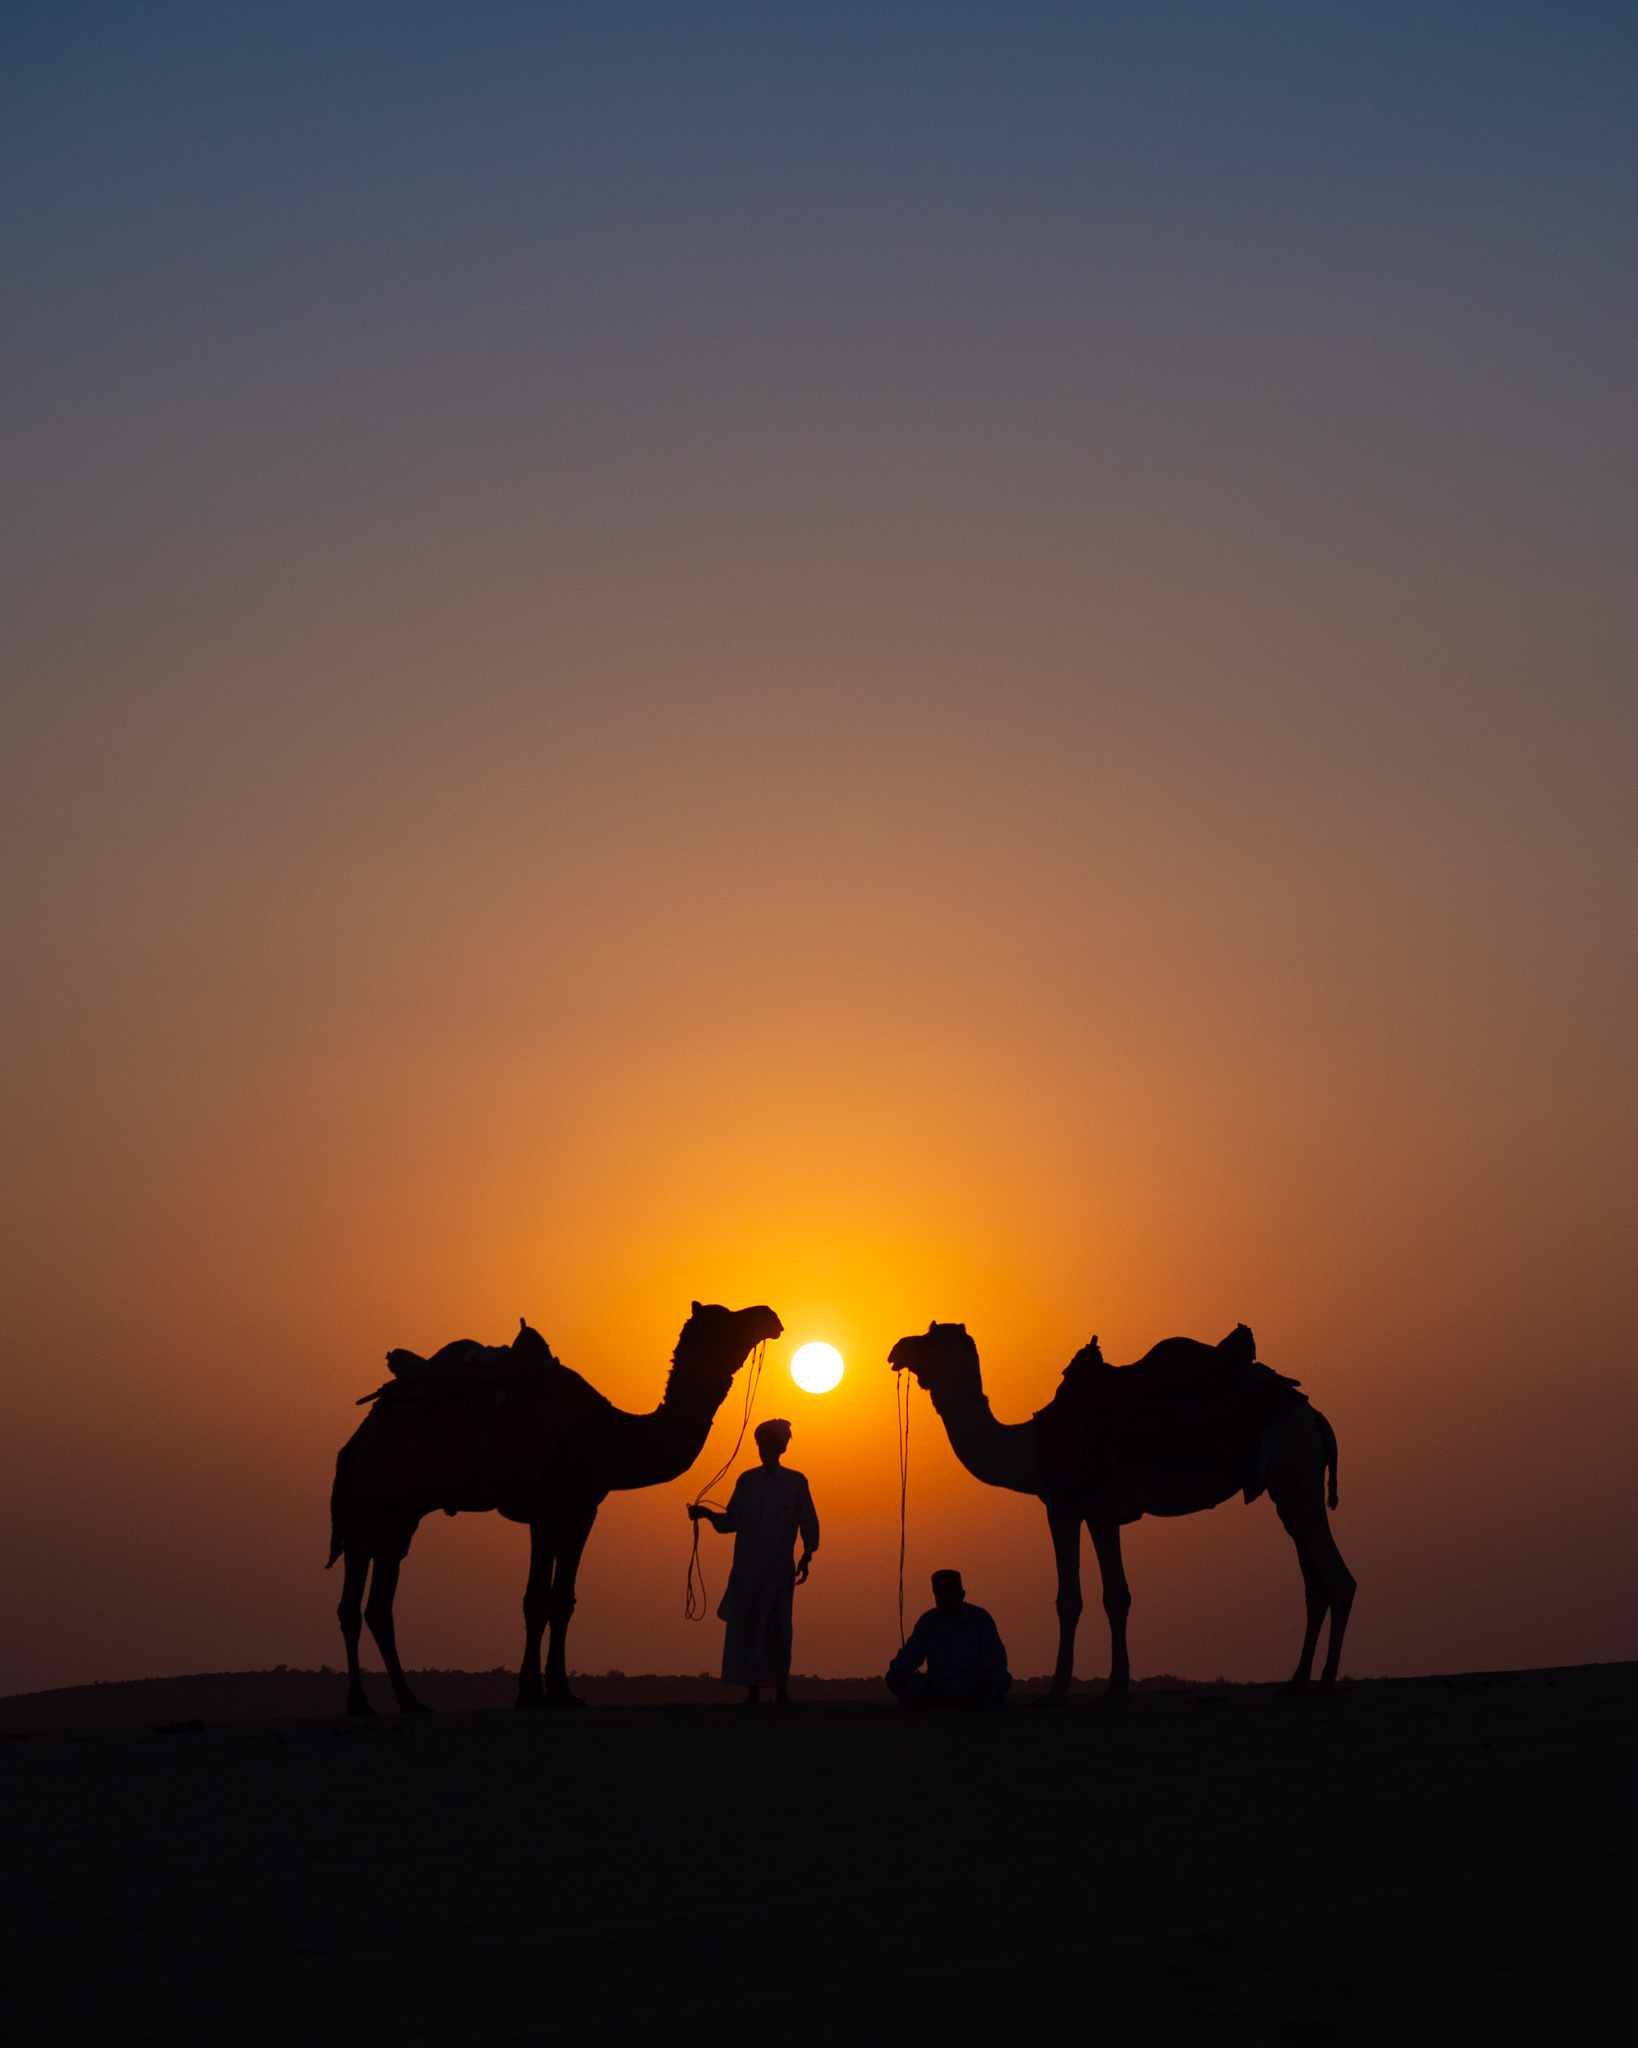 Sunset on the sand dunes in Jaisalmer — and yes, we will endeavor to create a photo like this together!